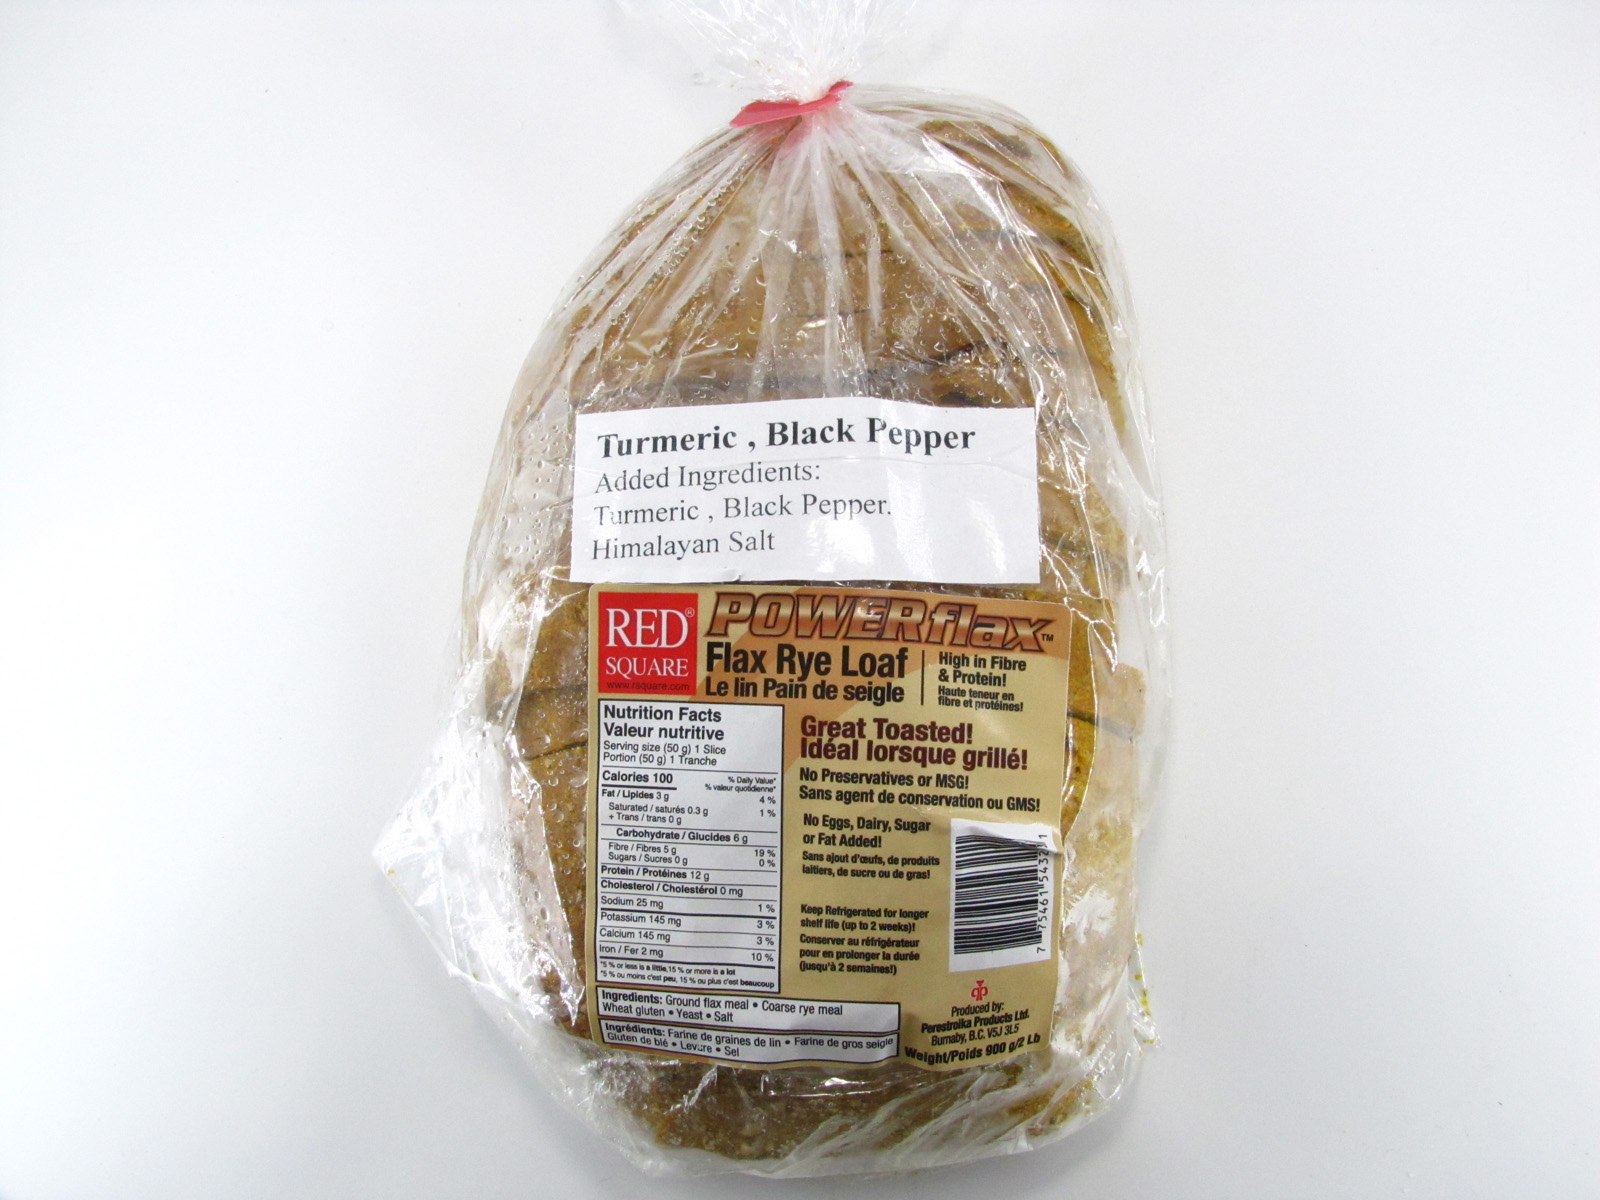 Powerflax - Turmeric, Black Pepper Bread - front view